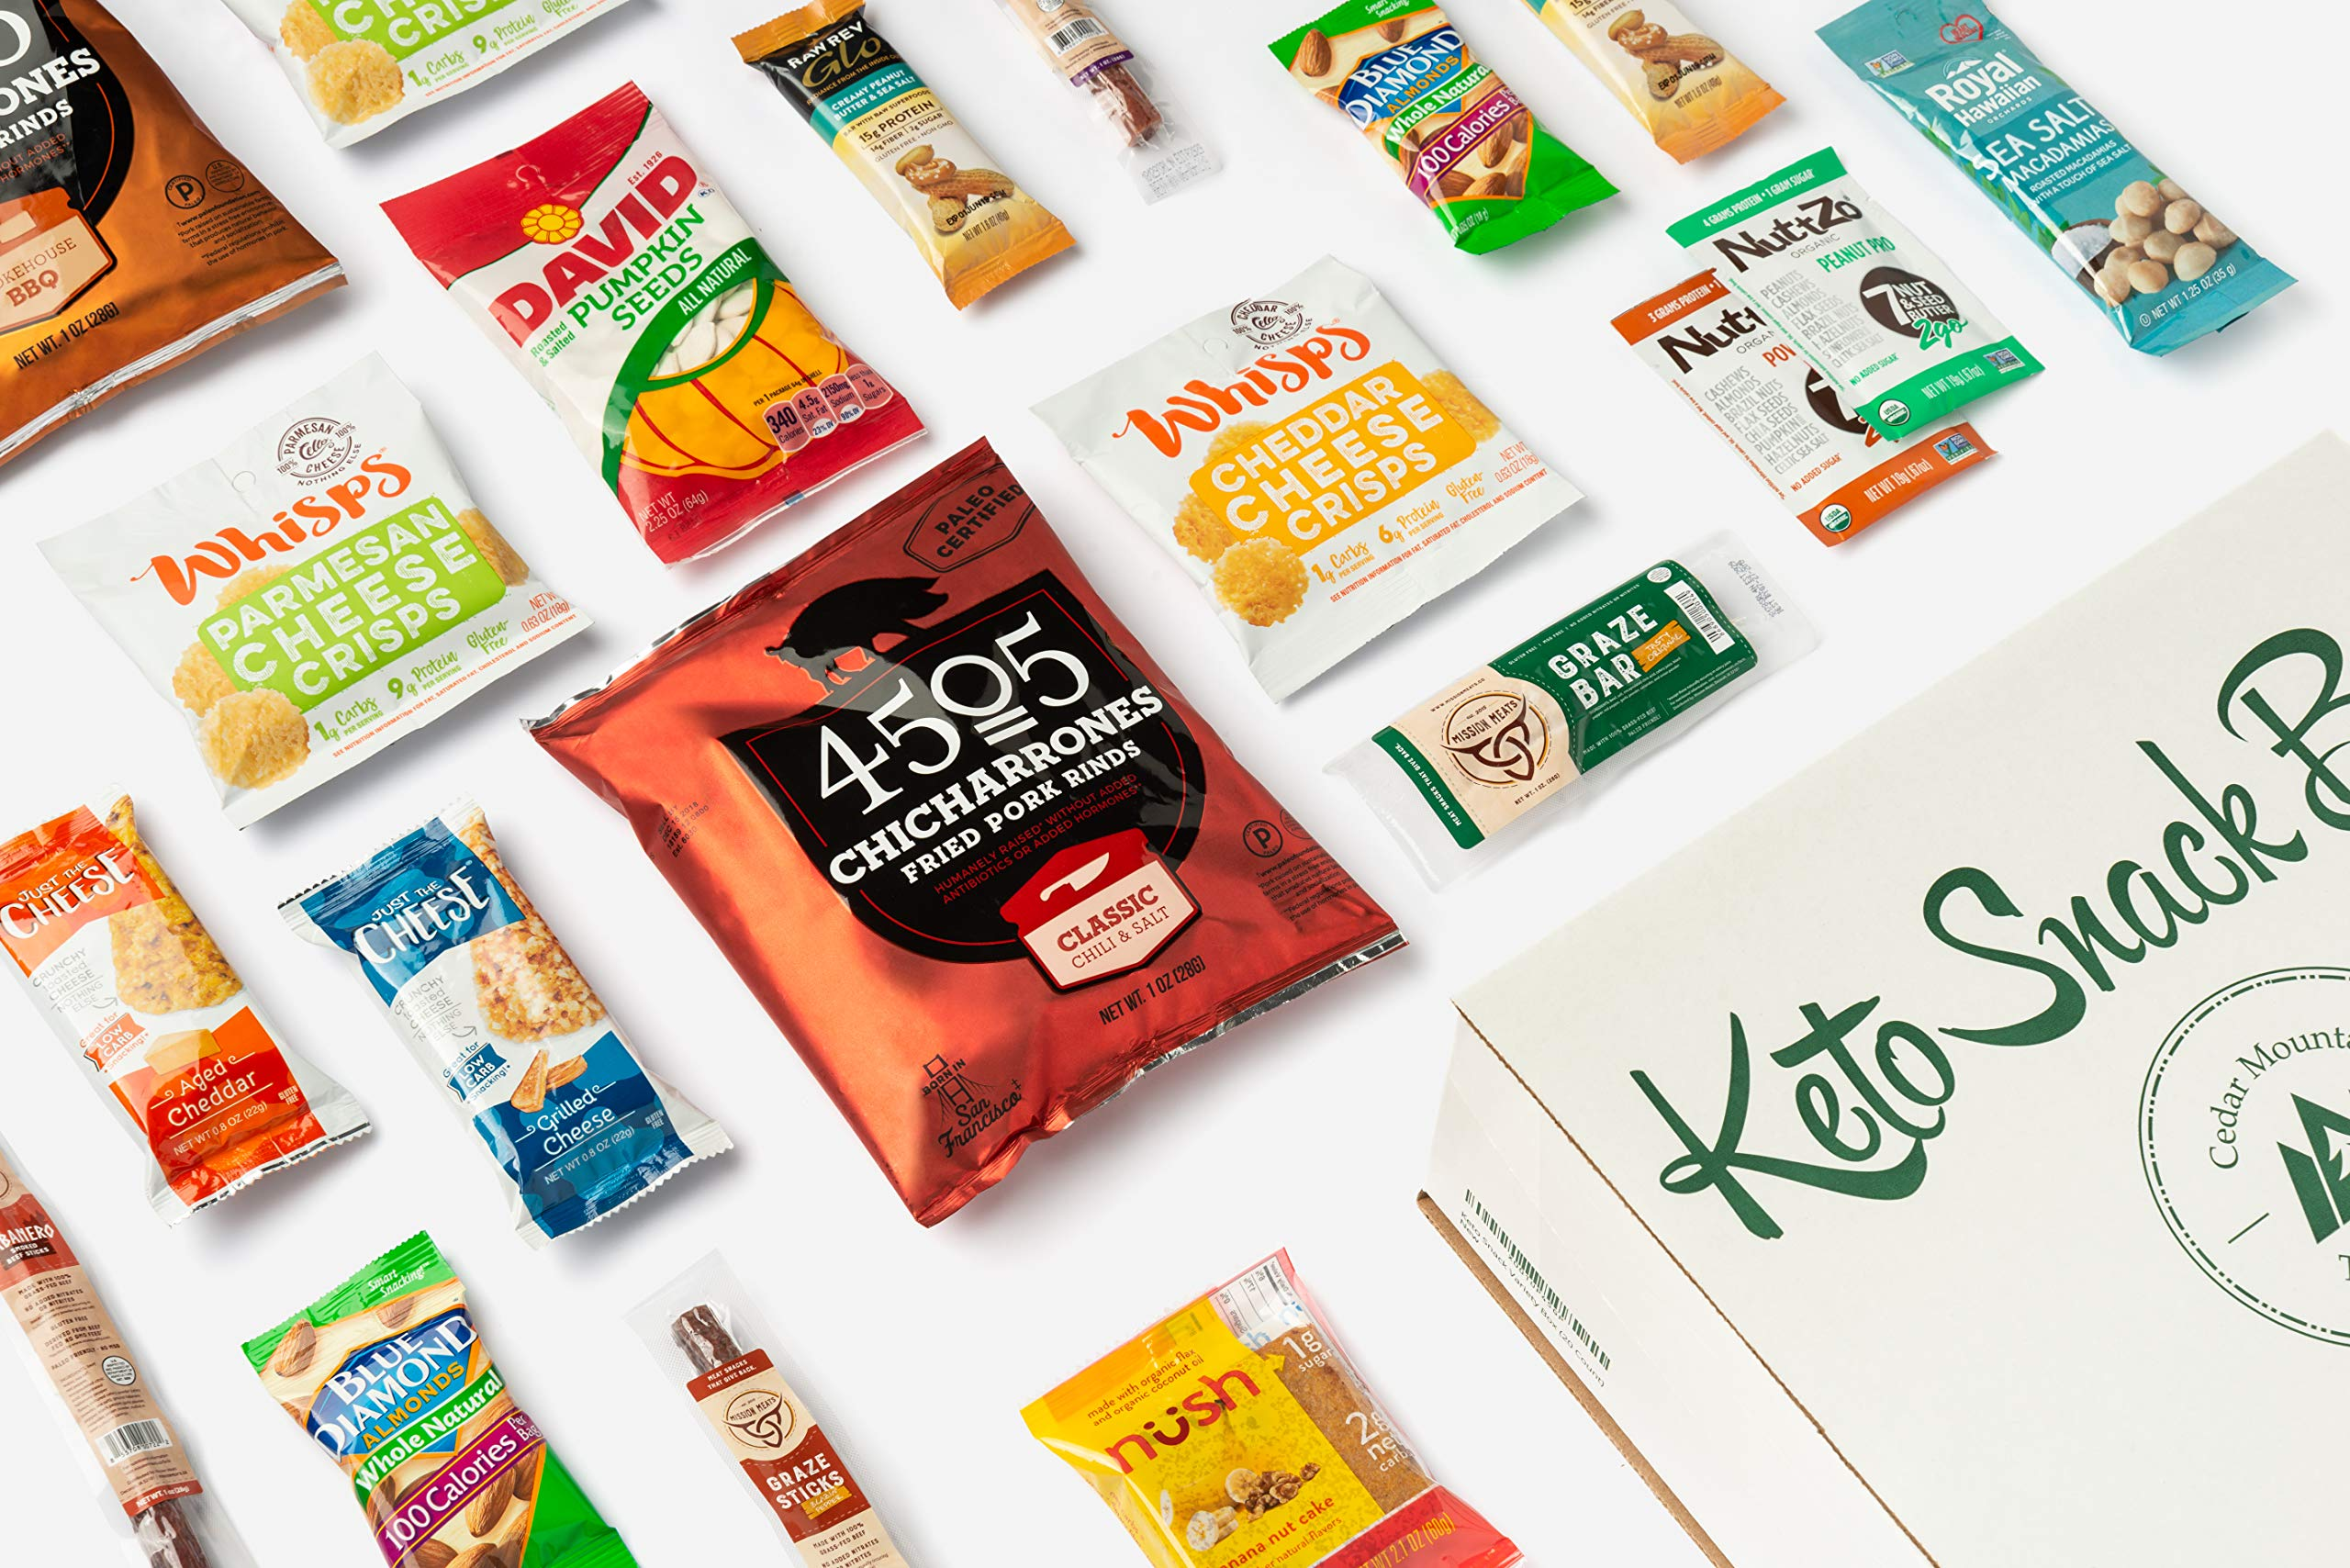 Keto Snack Box (40 Count)-Ultra Low Carb Snacks-Ketogenic Friendly, Gluten Free, Low Sugar Healthy Keto Gift Box Variety Pack - Protein Bars, Pork Rinds, Cheese Crisps, Nut, Jerky, and More by Cedar Mountain Trade Co. (Image #5)